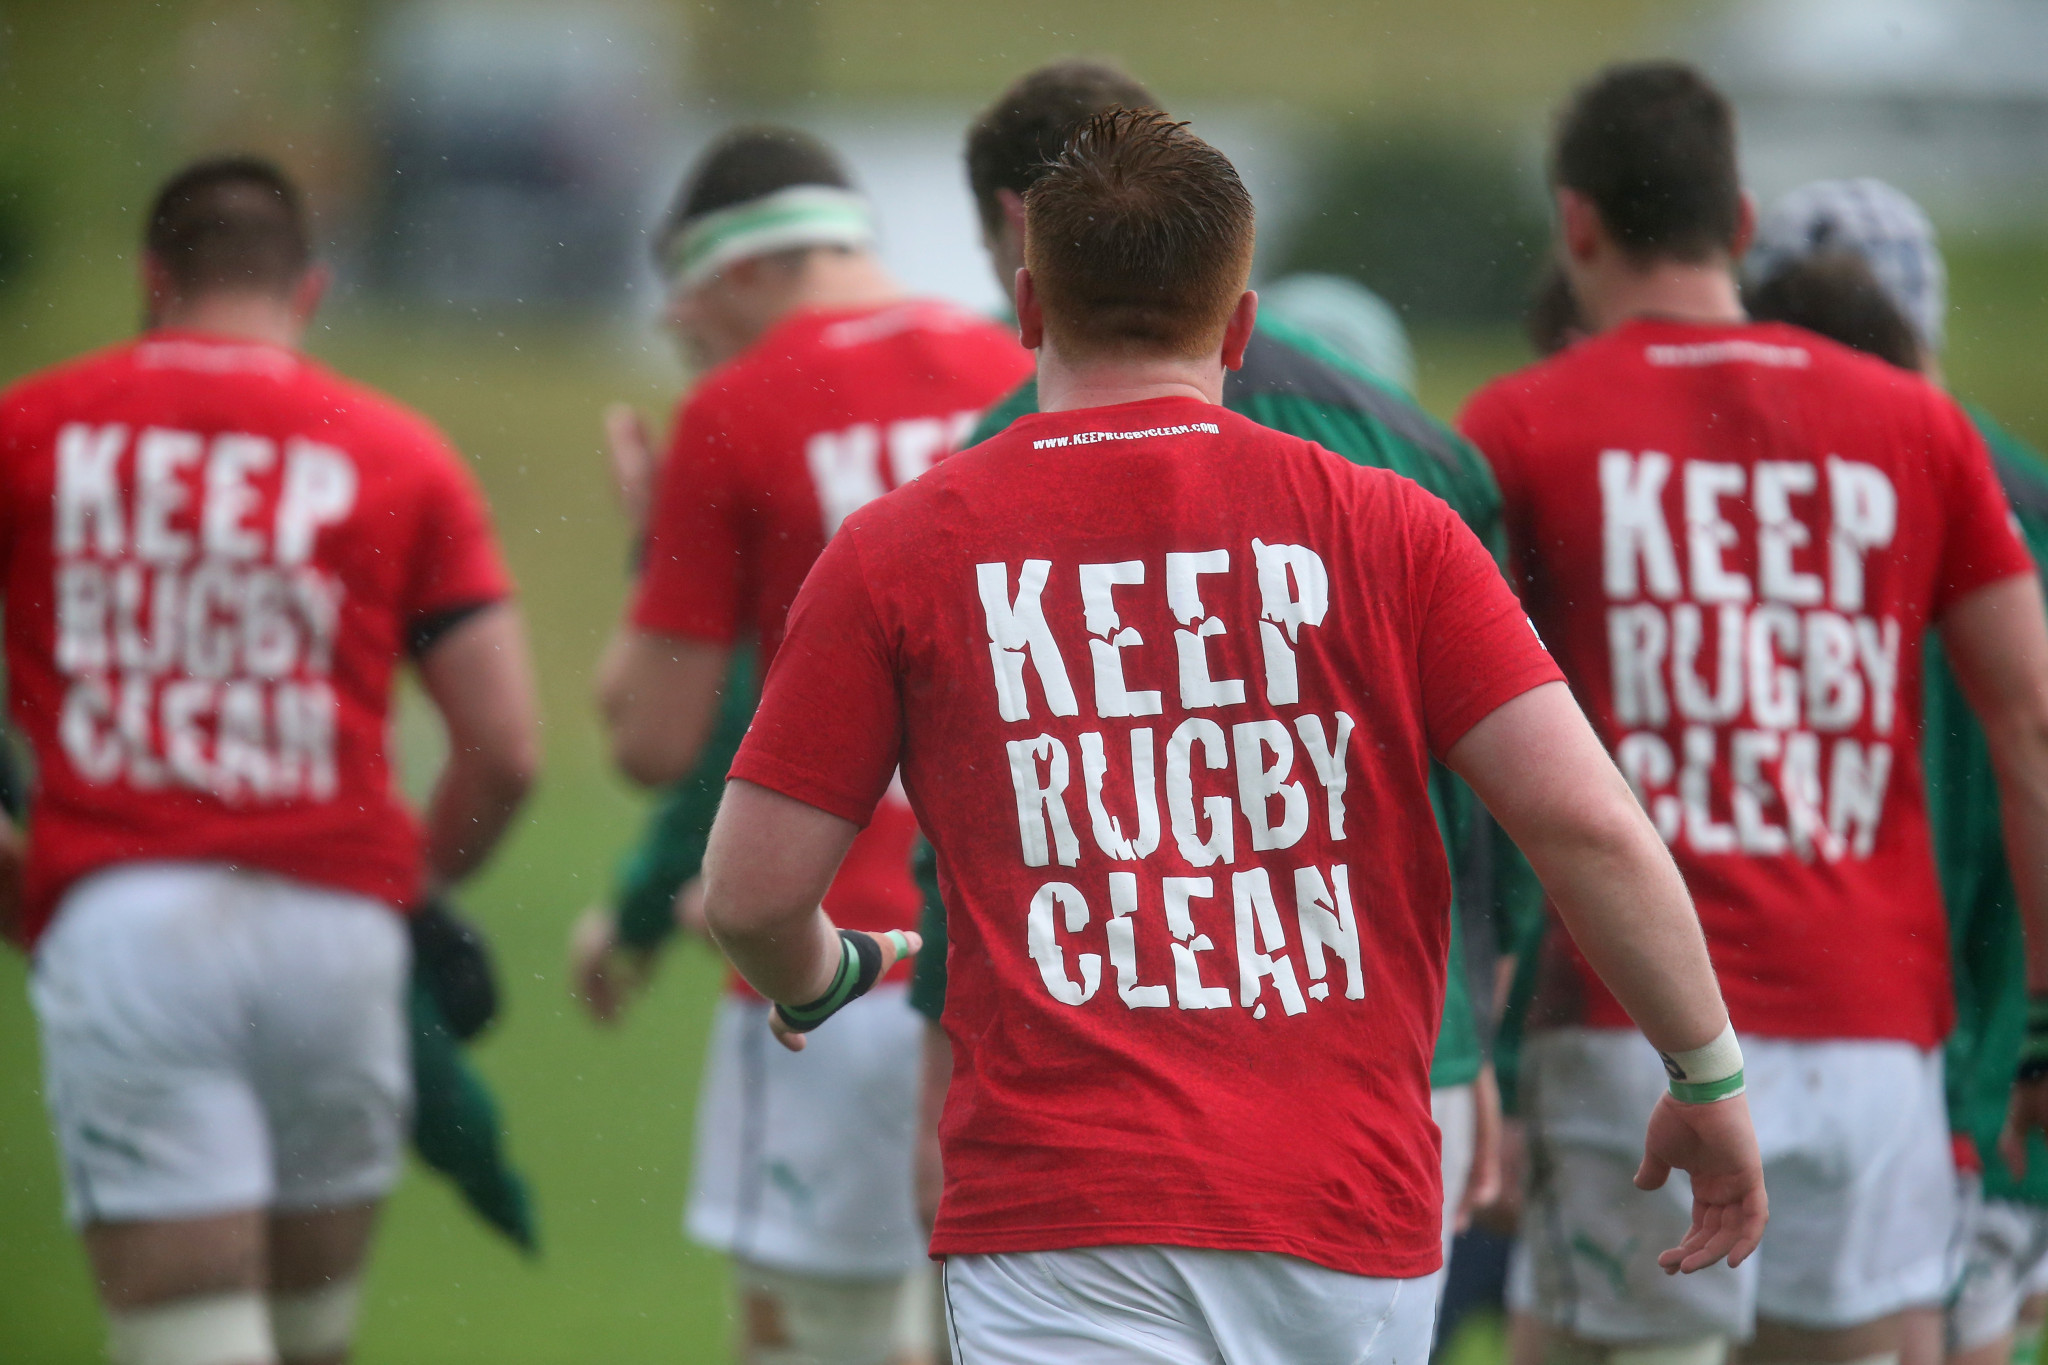 World Rugby's global anti-doping test programme found four violations in 2018